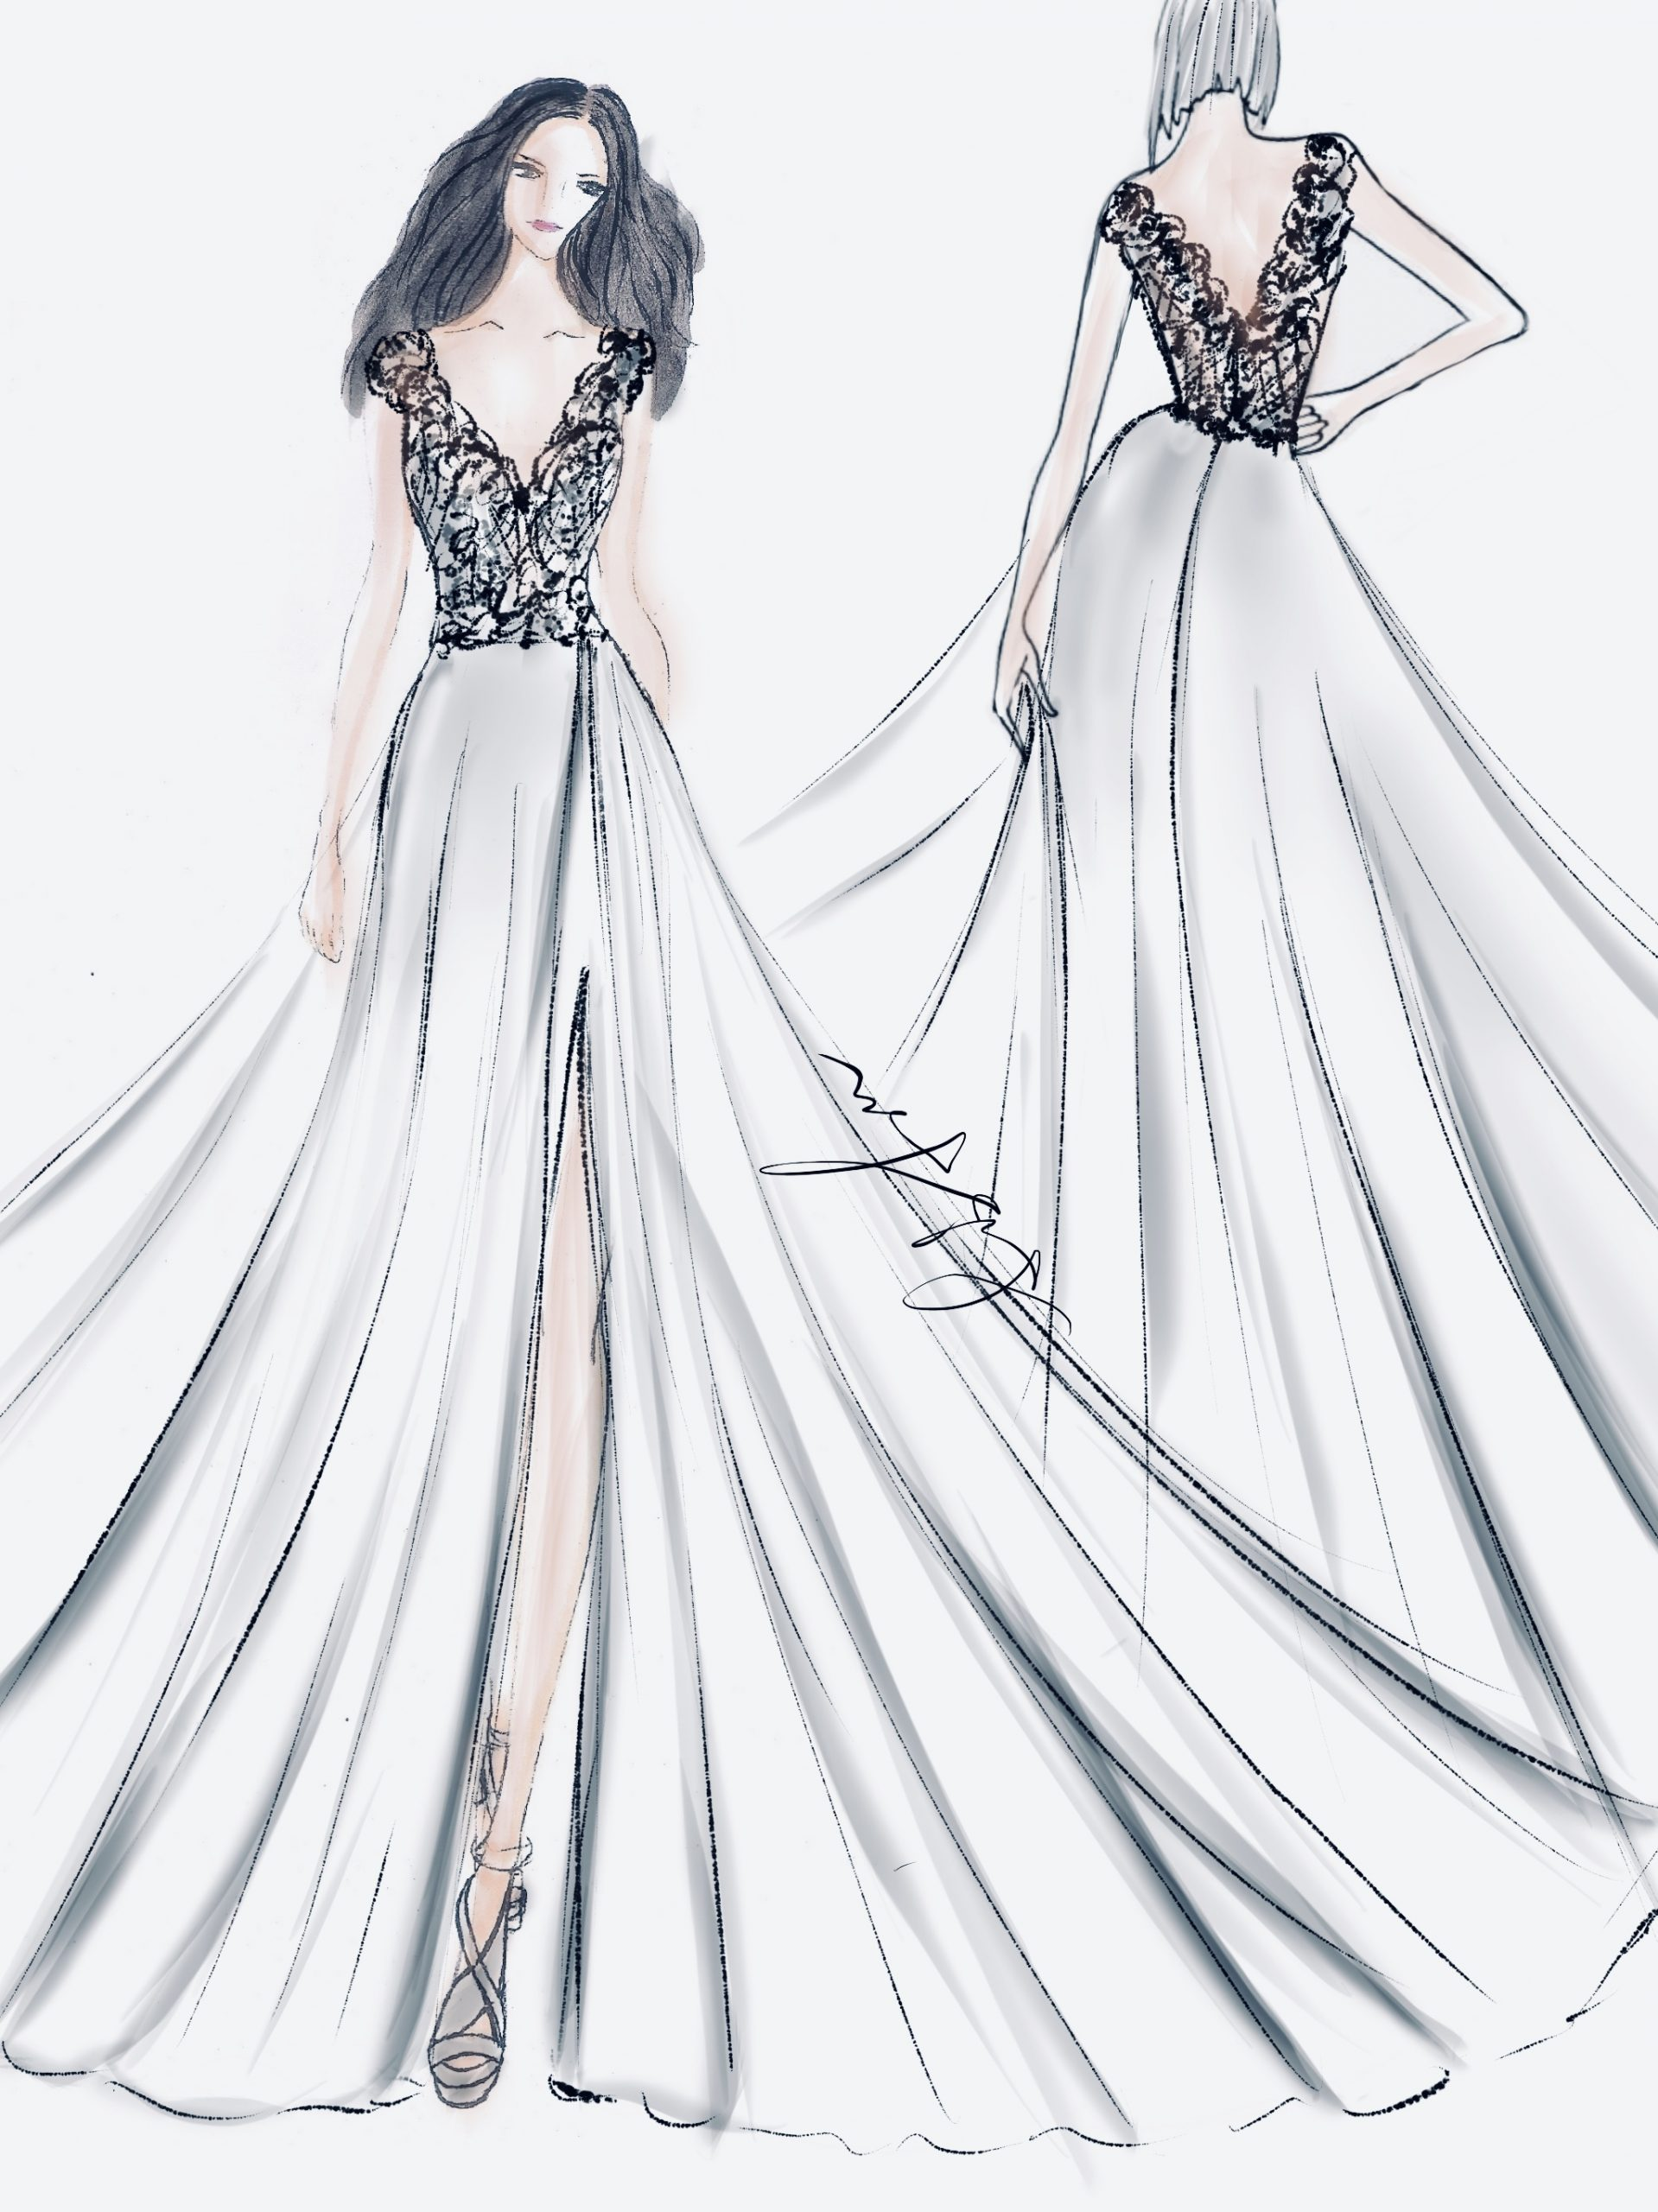 The sketch of the designers' choice of the month.